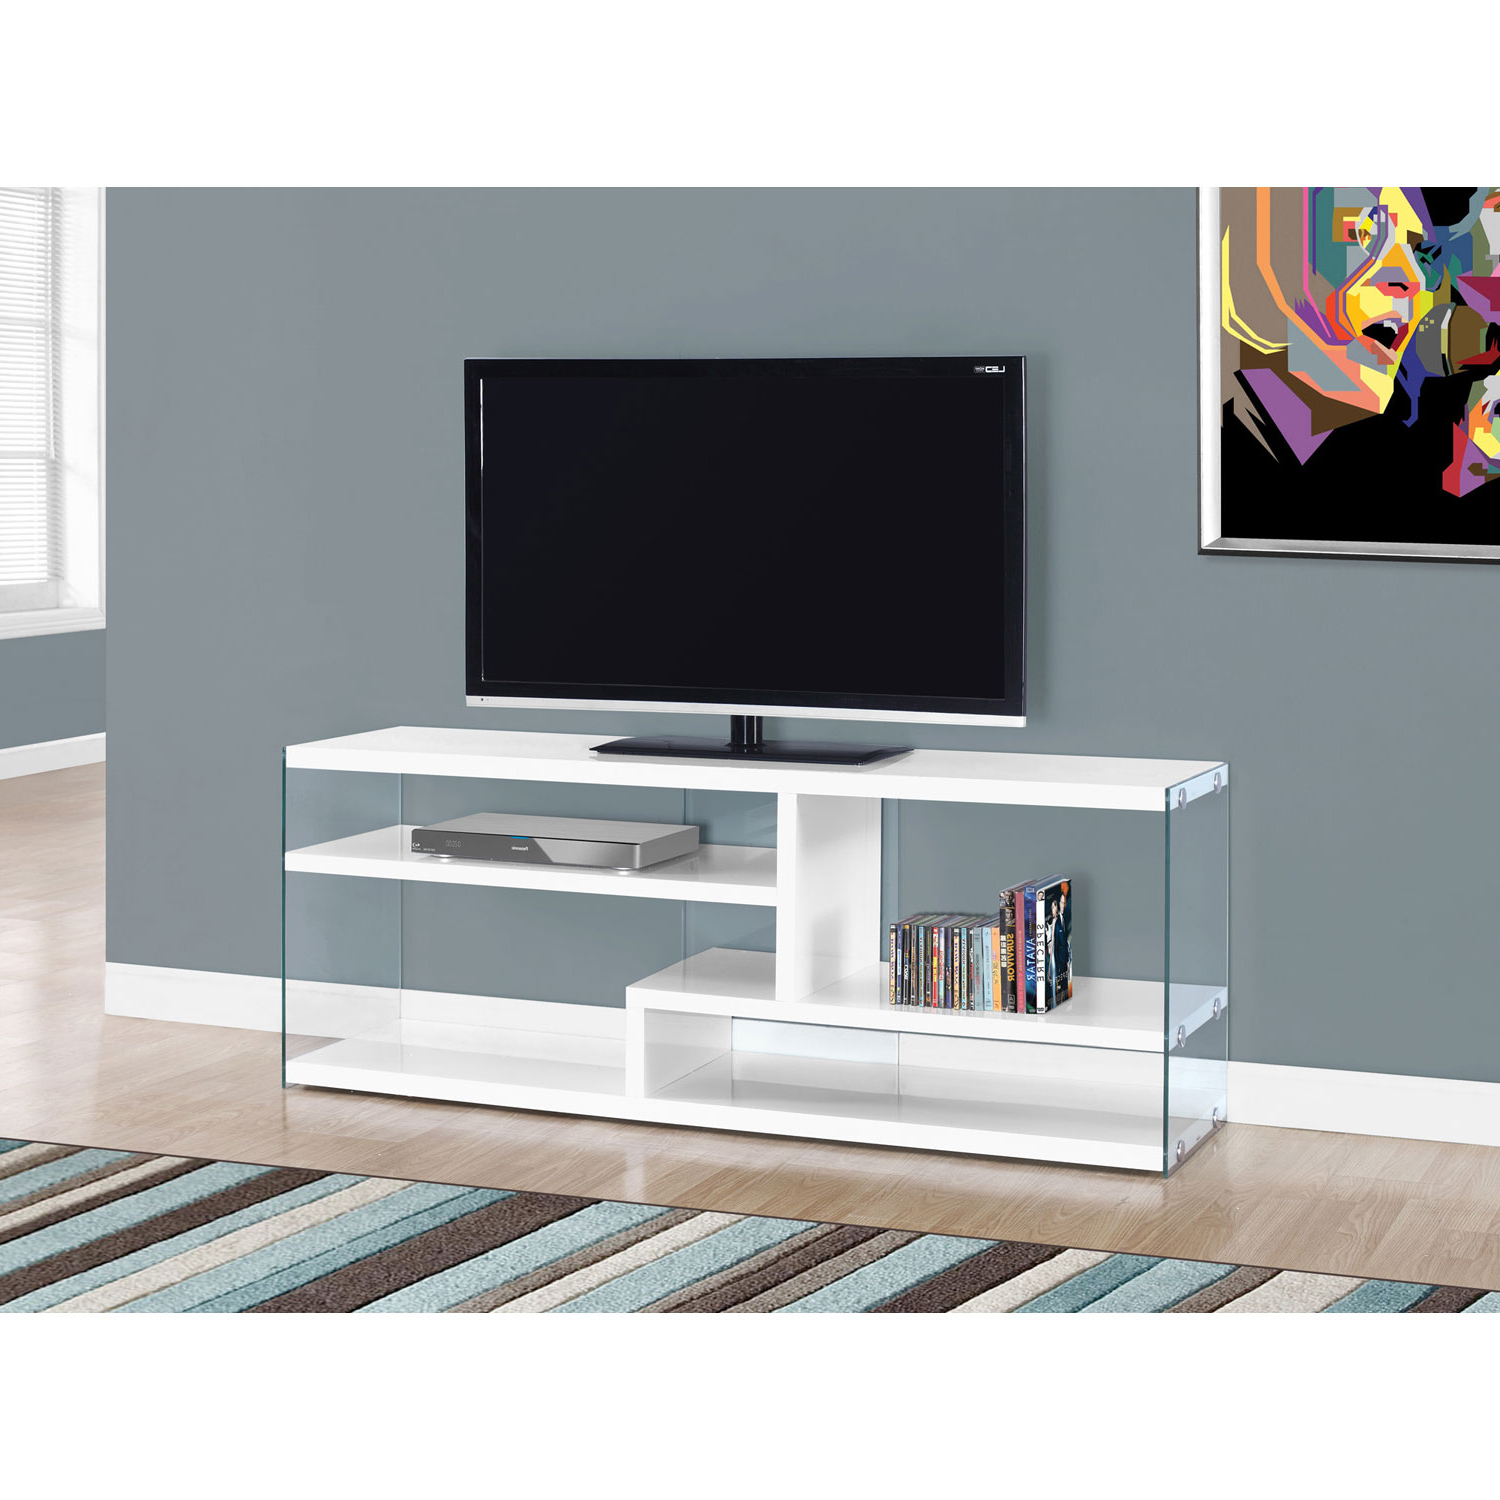 Hawthorne Ave Tv Stand 60L / Glossy White With Tempered Glass I 2690 Throughout Noah 75 Inch Tv Stands (Gallery 7 of 20)